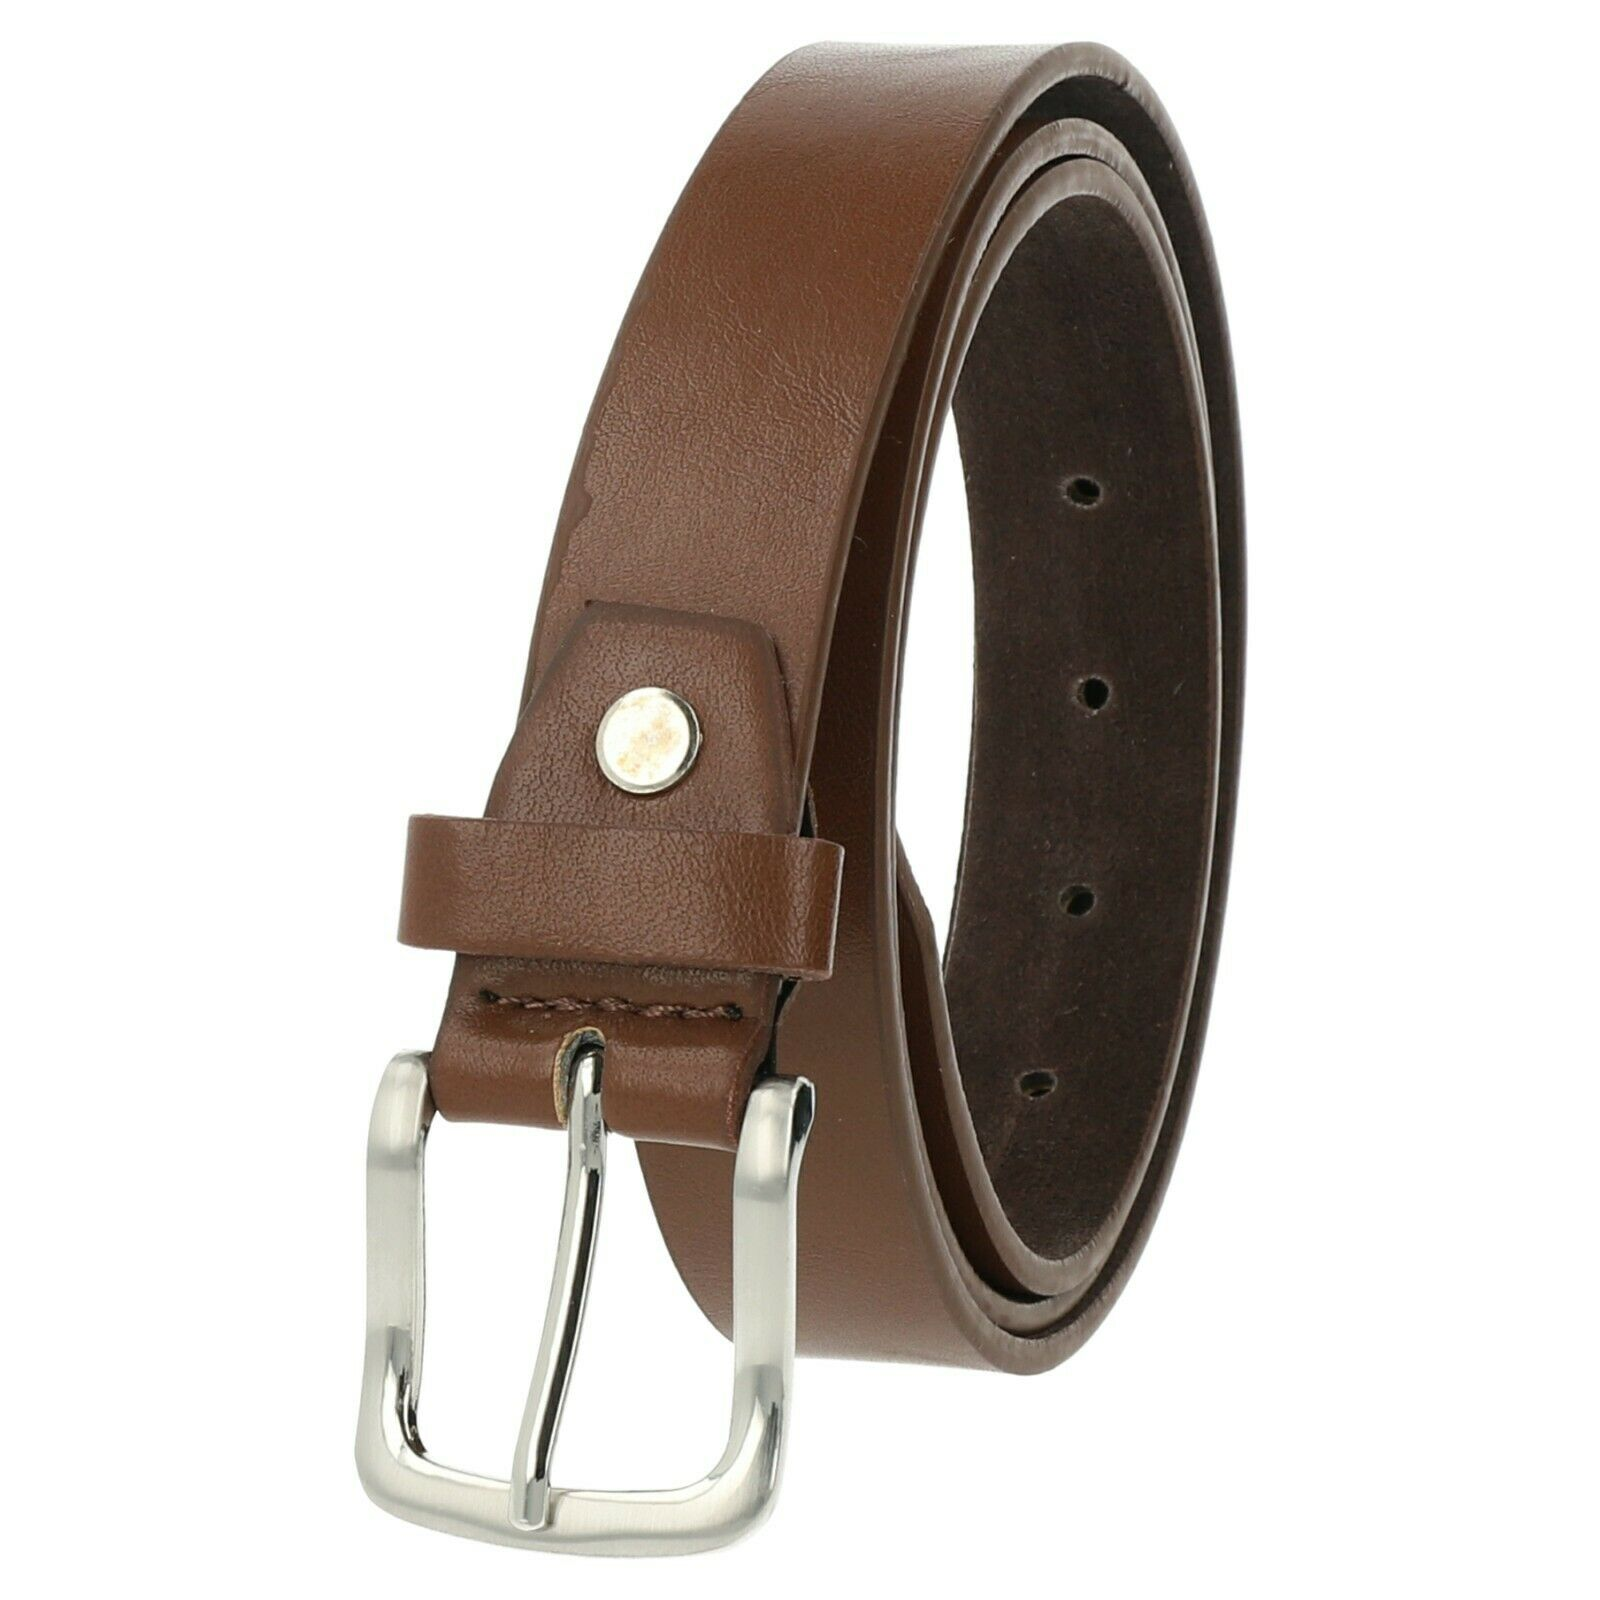 Belt WOMENS Mens Jeans Genuine Leather Wide 3 cm Buckle Can Be Shortened Brown New